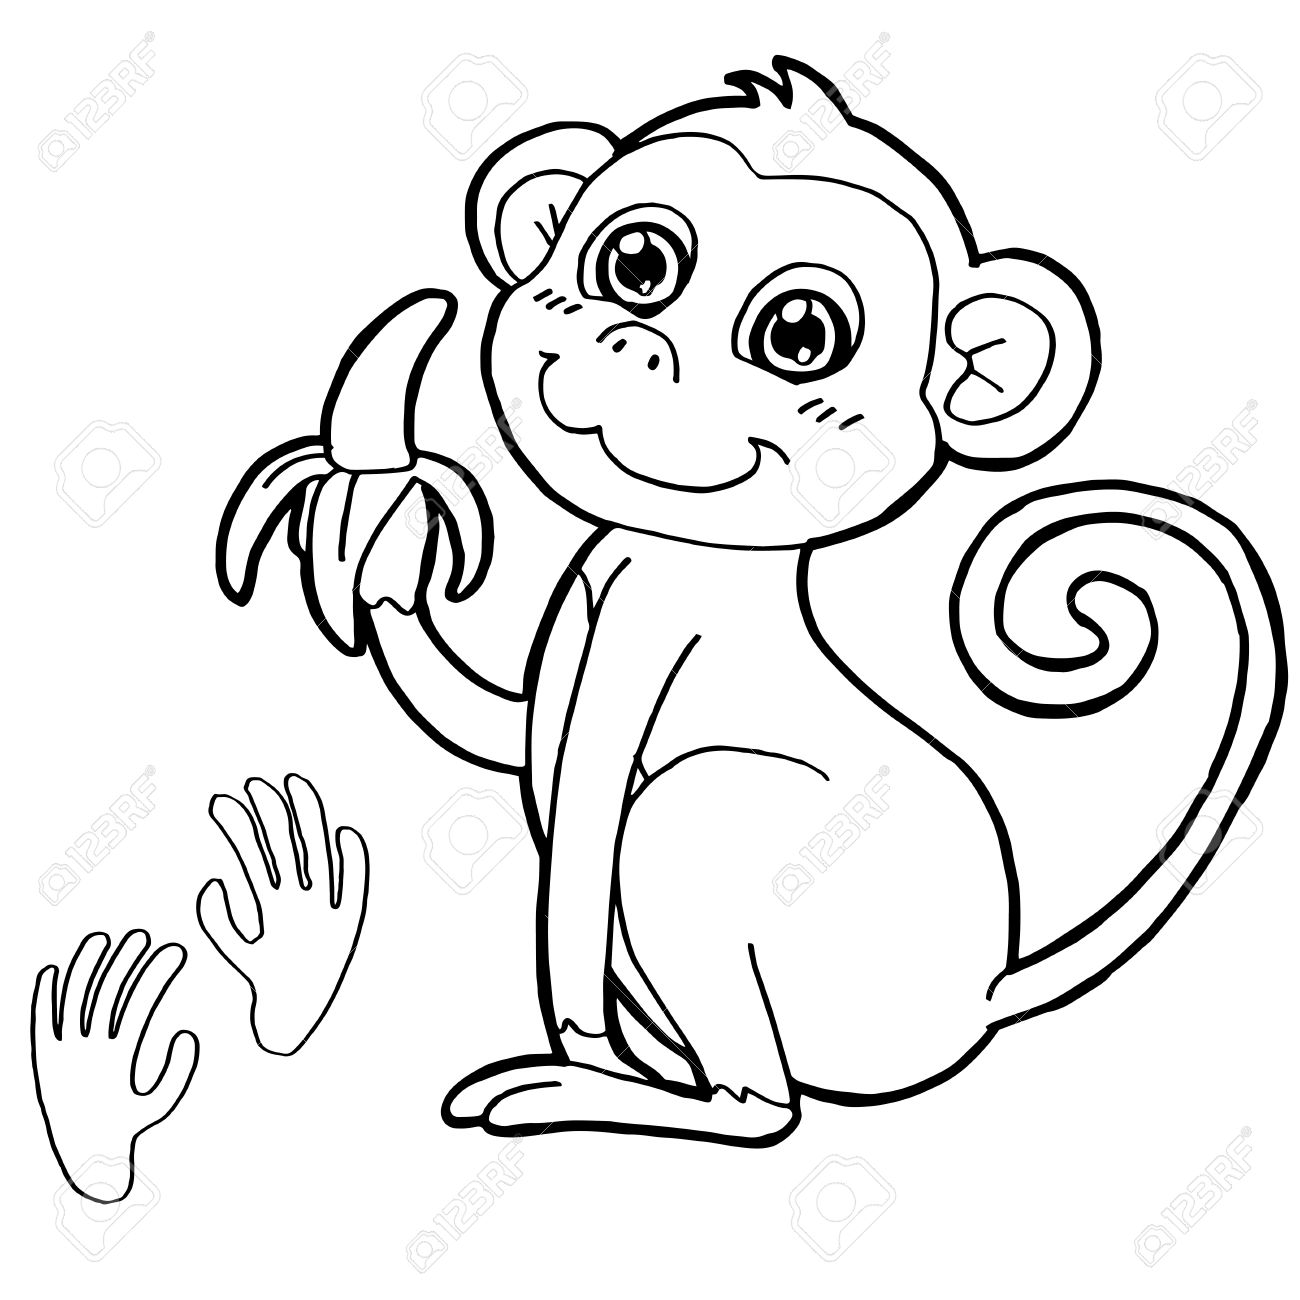 Monkey With Paw Print Coloring Page Vector Stock